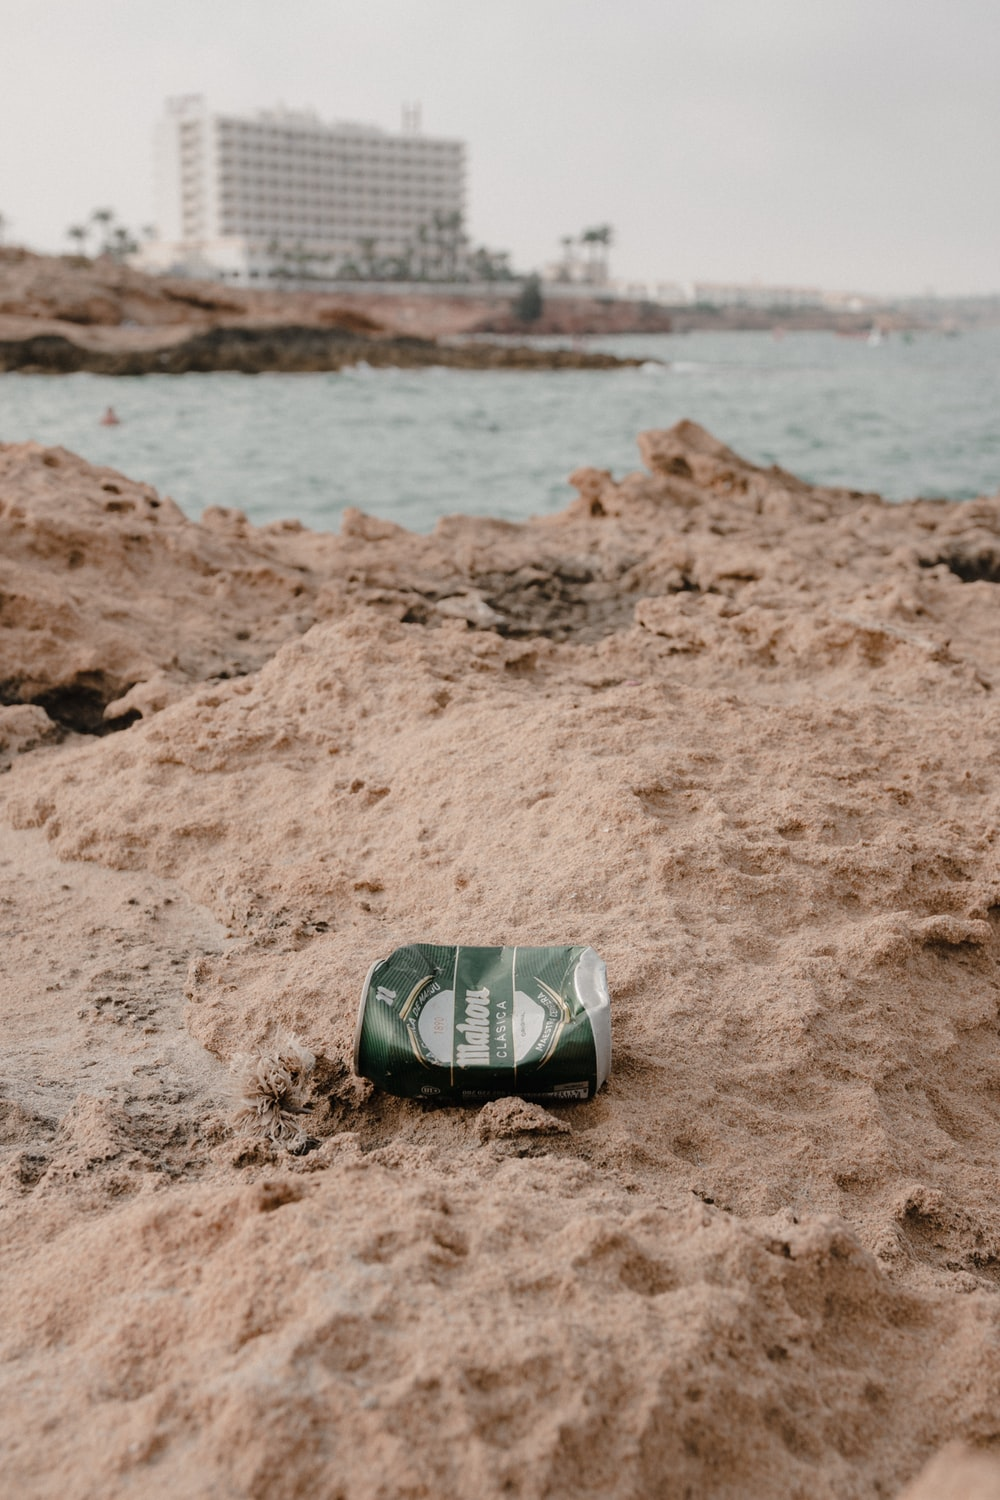 green and white labeled can on brown sand near sea during daytime